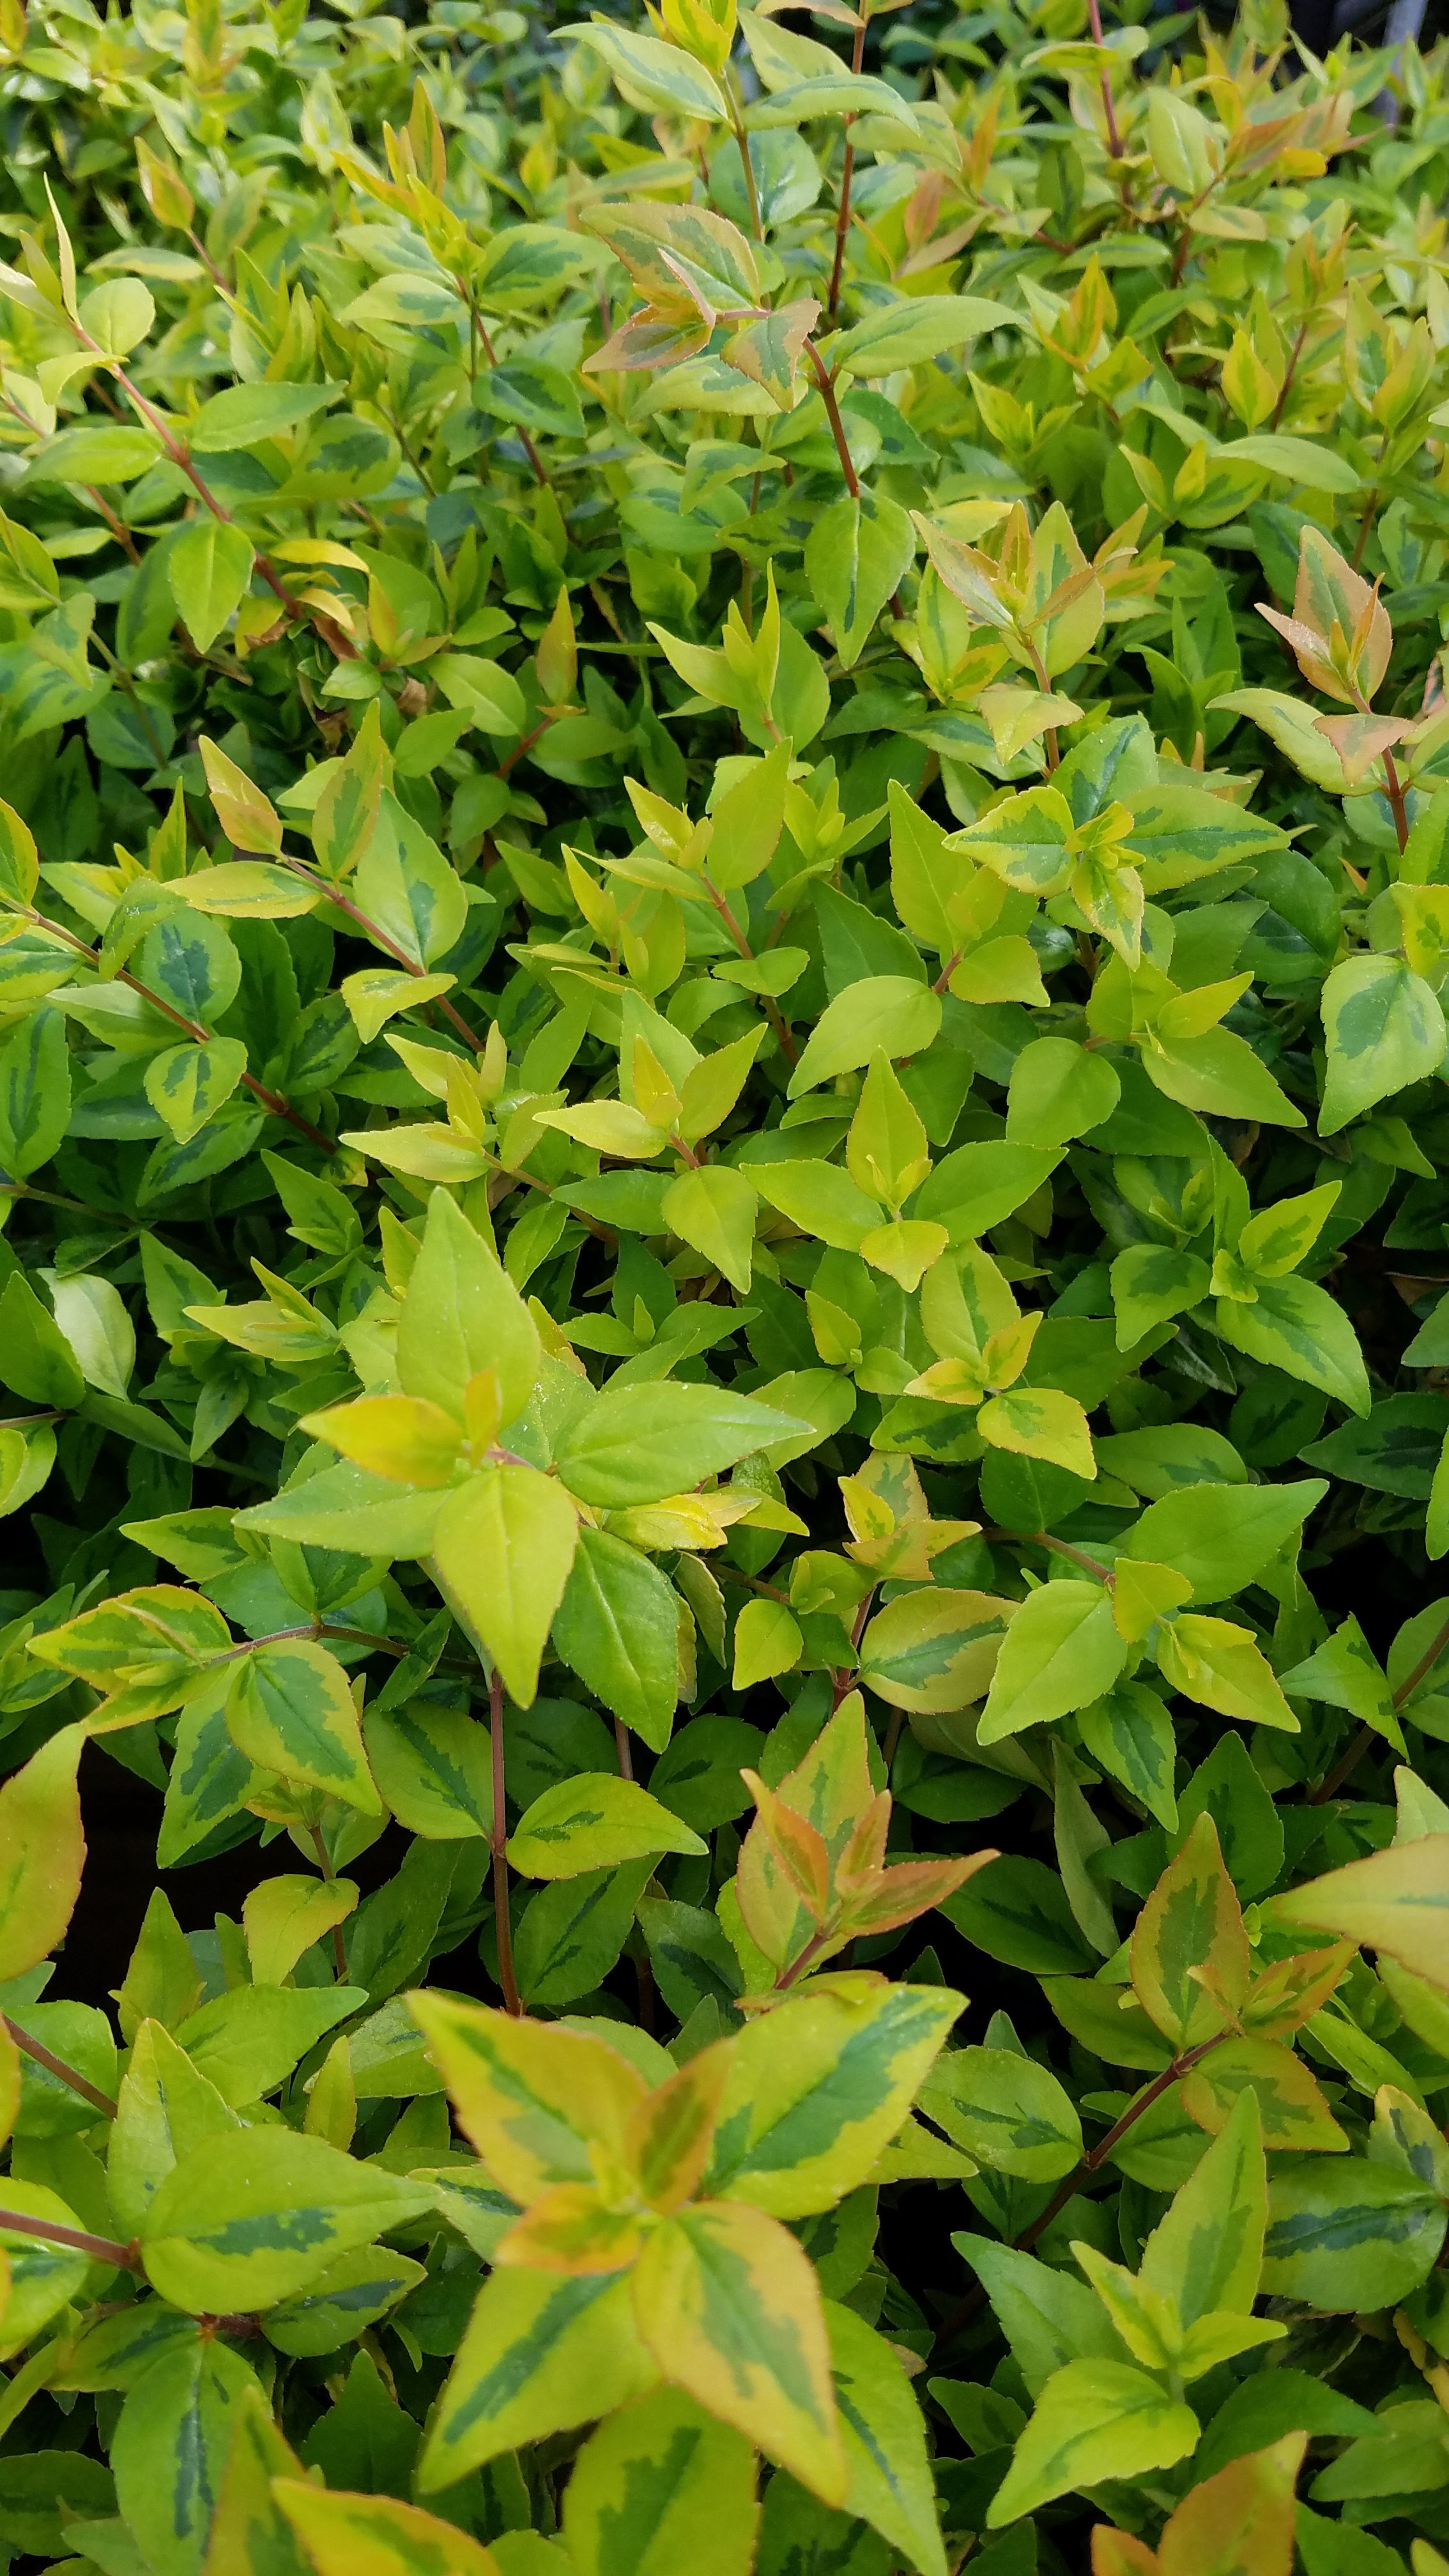 Kaleidoscope Abelia Is An Easy Care Shrub With Beautiful Variegated